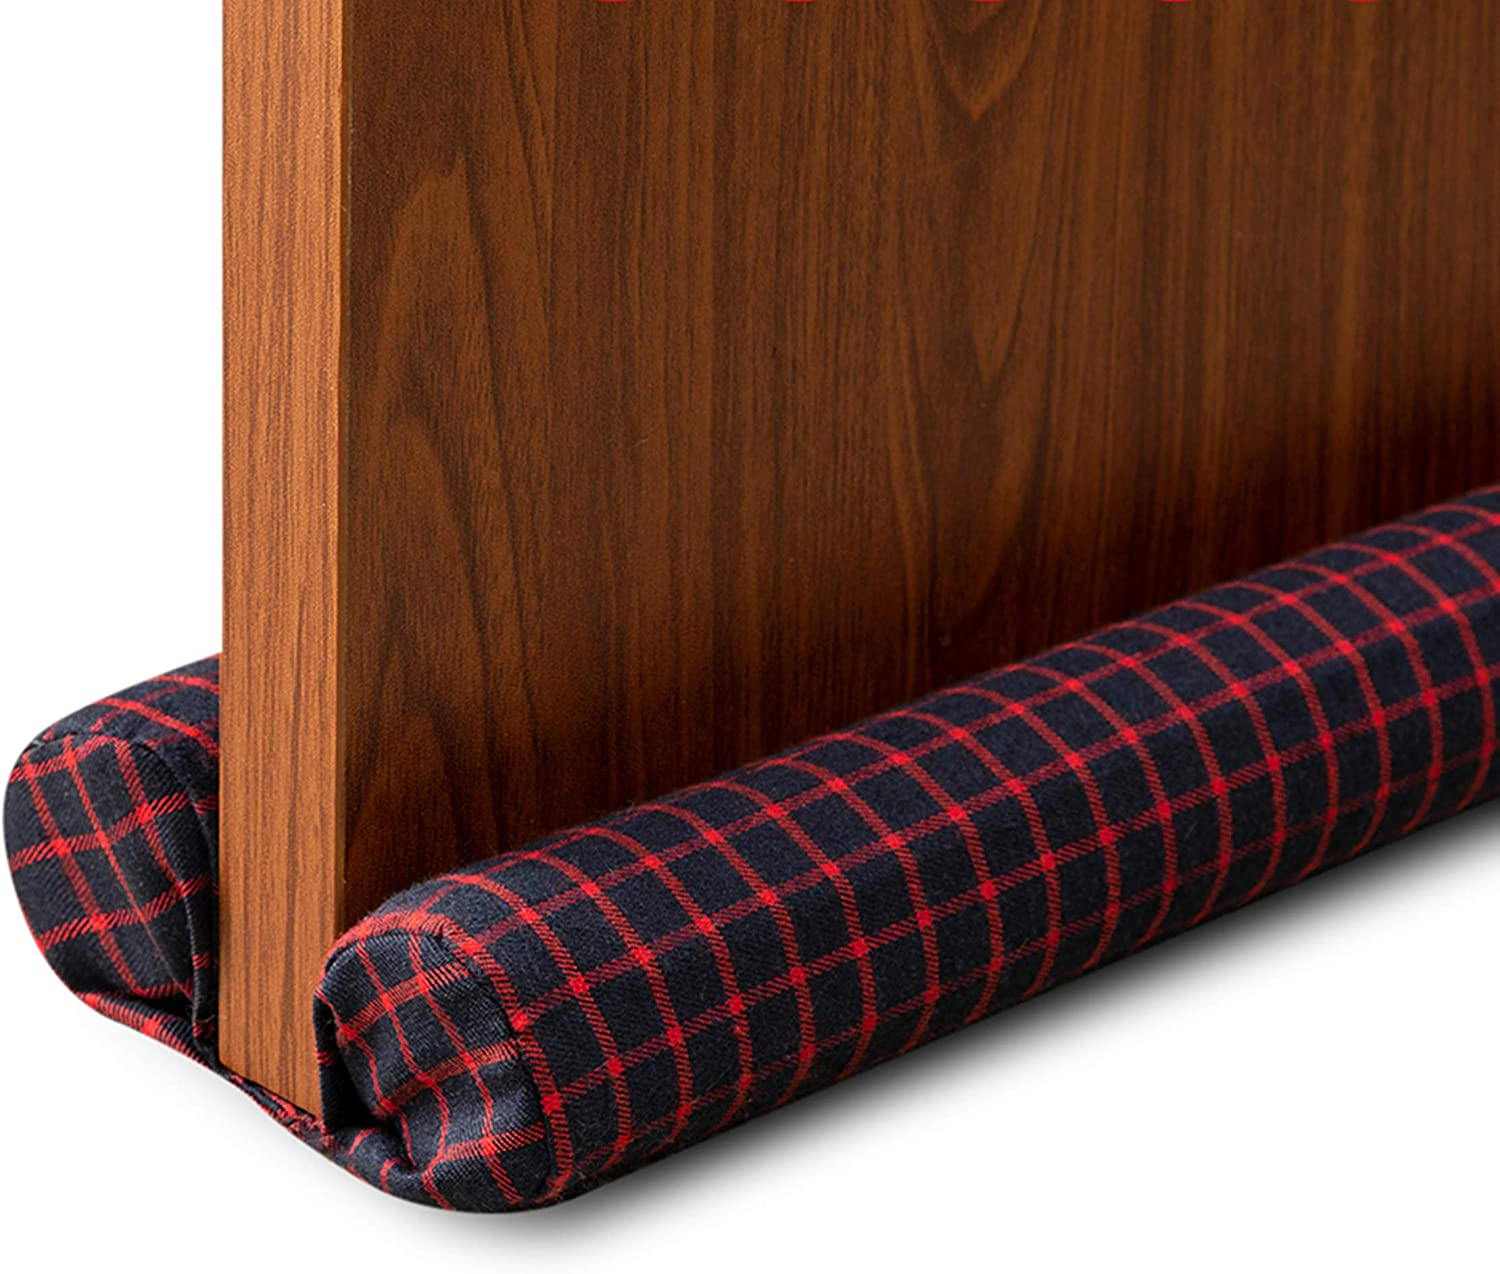 DreamQuil Door Draft Stopper 36 inches Noise Sound Light Smell Blocker, Double Sided Door Guard (Checker Red)